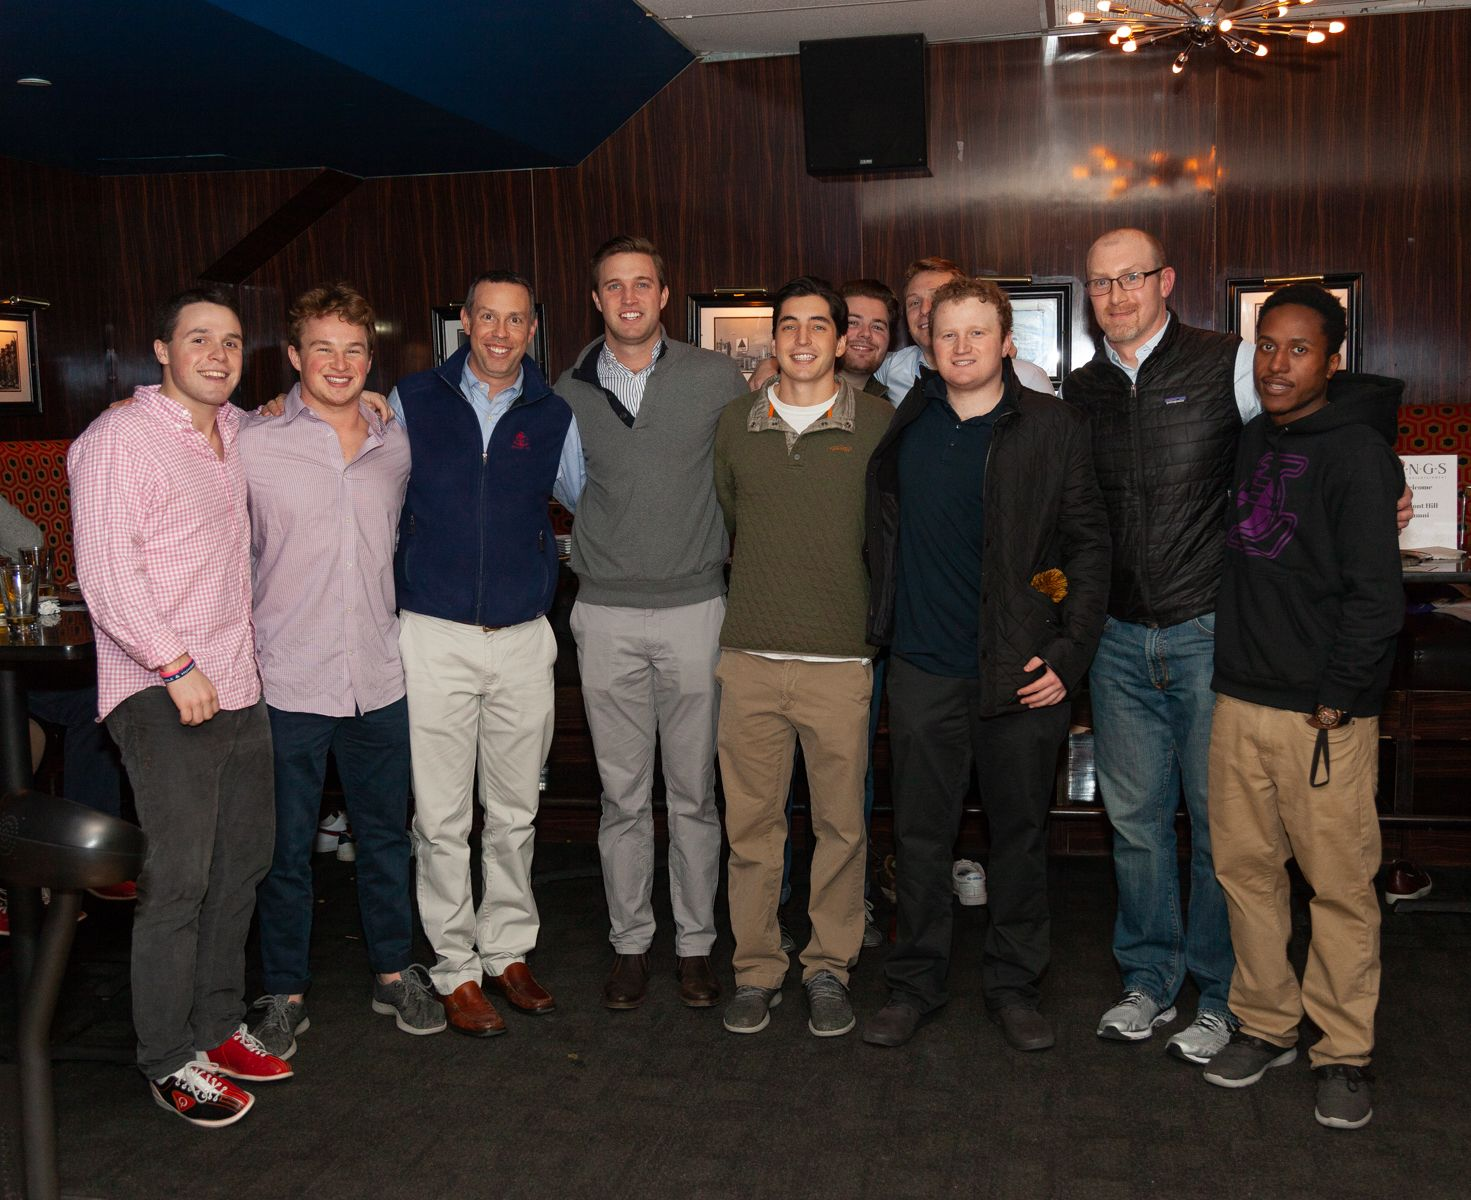 Young Alumni enjoy bowling at Kings with faculty members Tim Sullivan and Tyson Trautz, January 3, 2019.